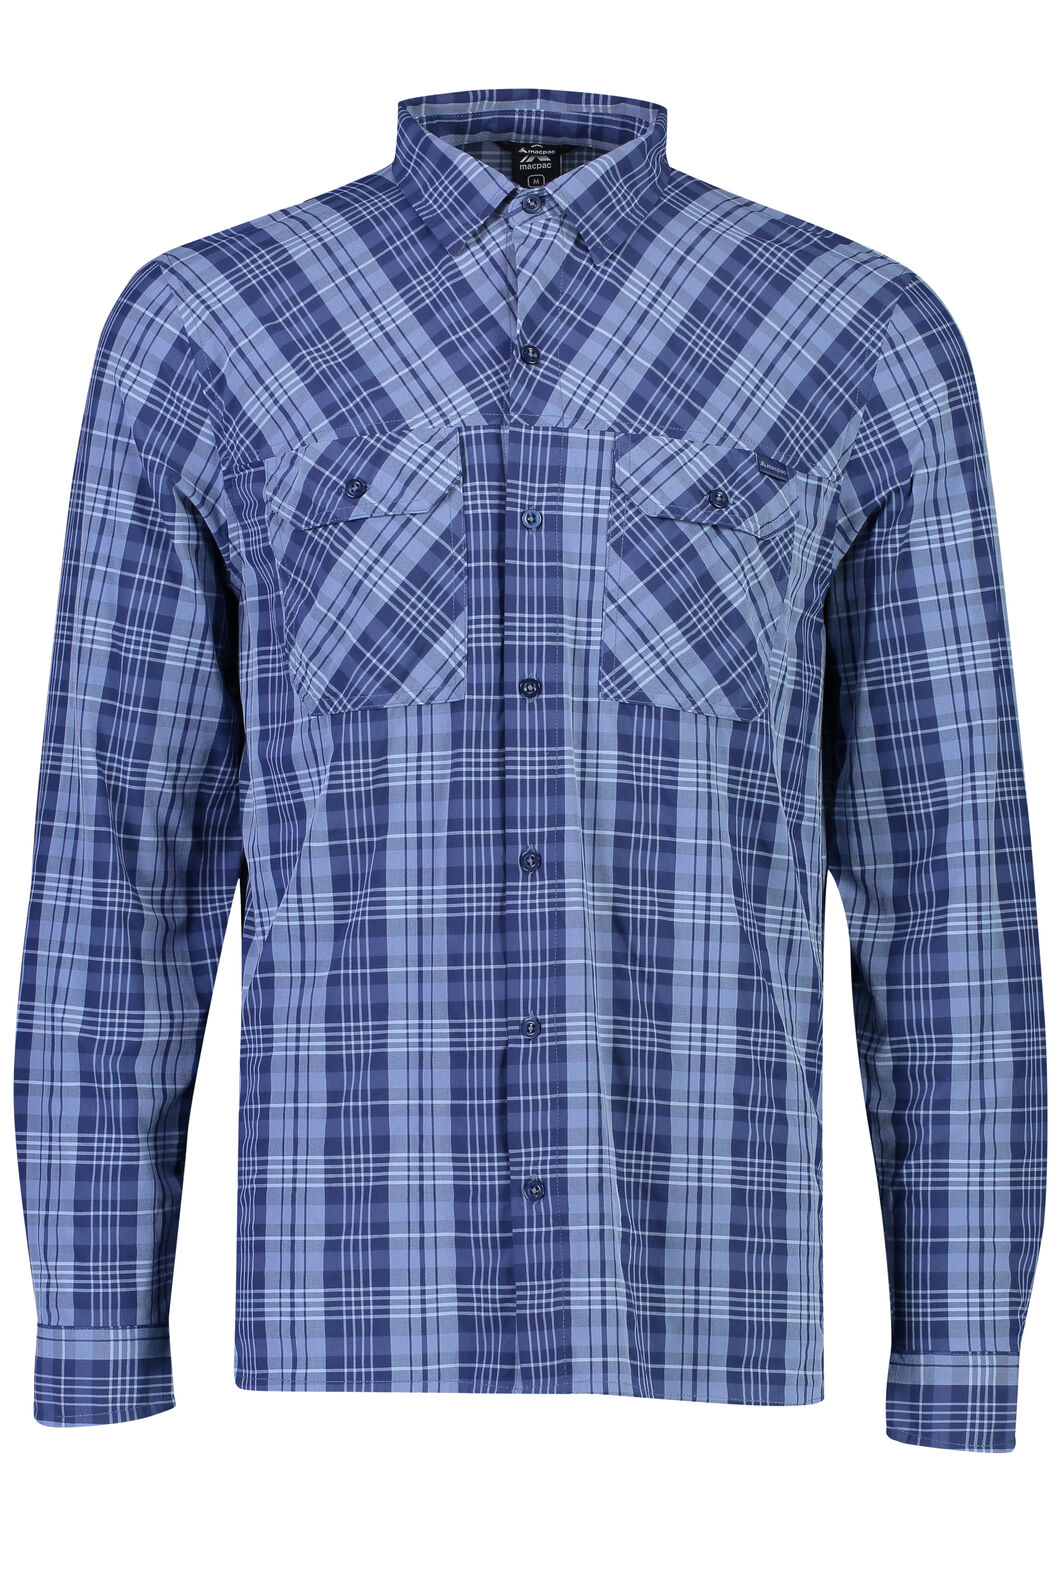 Eclipse Long Sleeve Shirt - Men's, Medieval Blue, hi-res